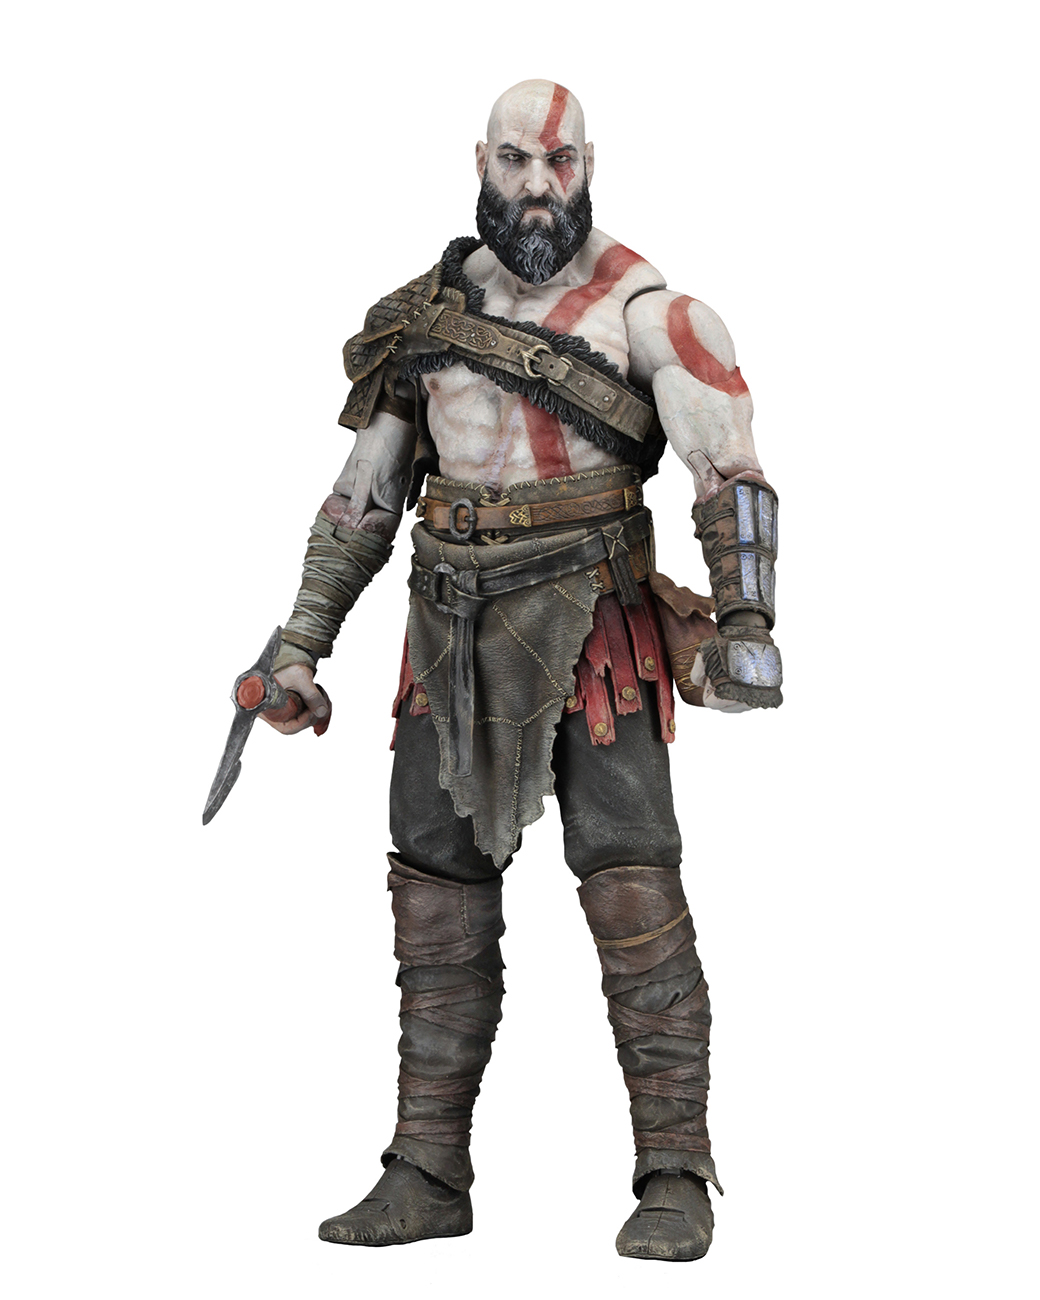 80 Toy Action Figure Shelves - Kratos1_Top 80 Toy Action Figure Shelves - Kratos1  Best Photo Reference_735886.jpg